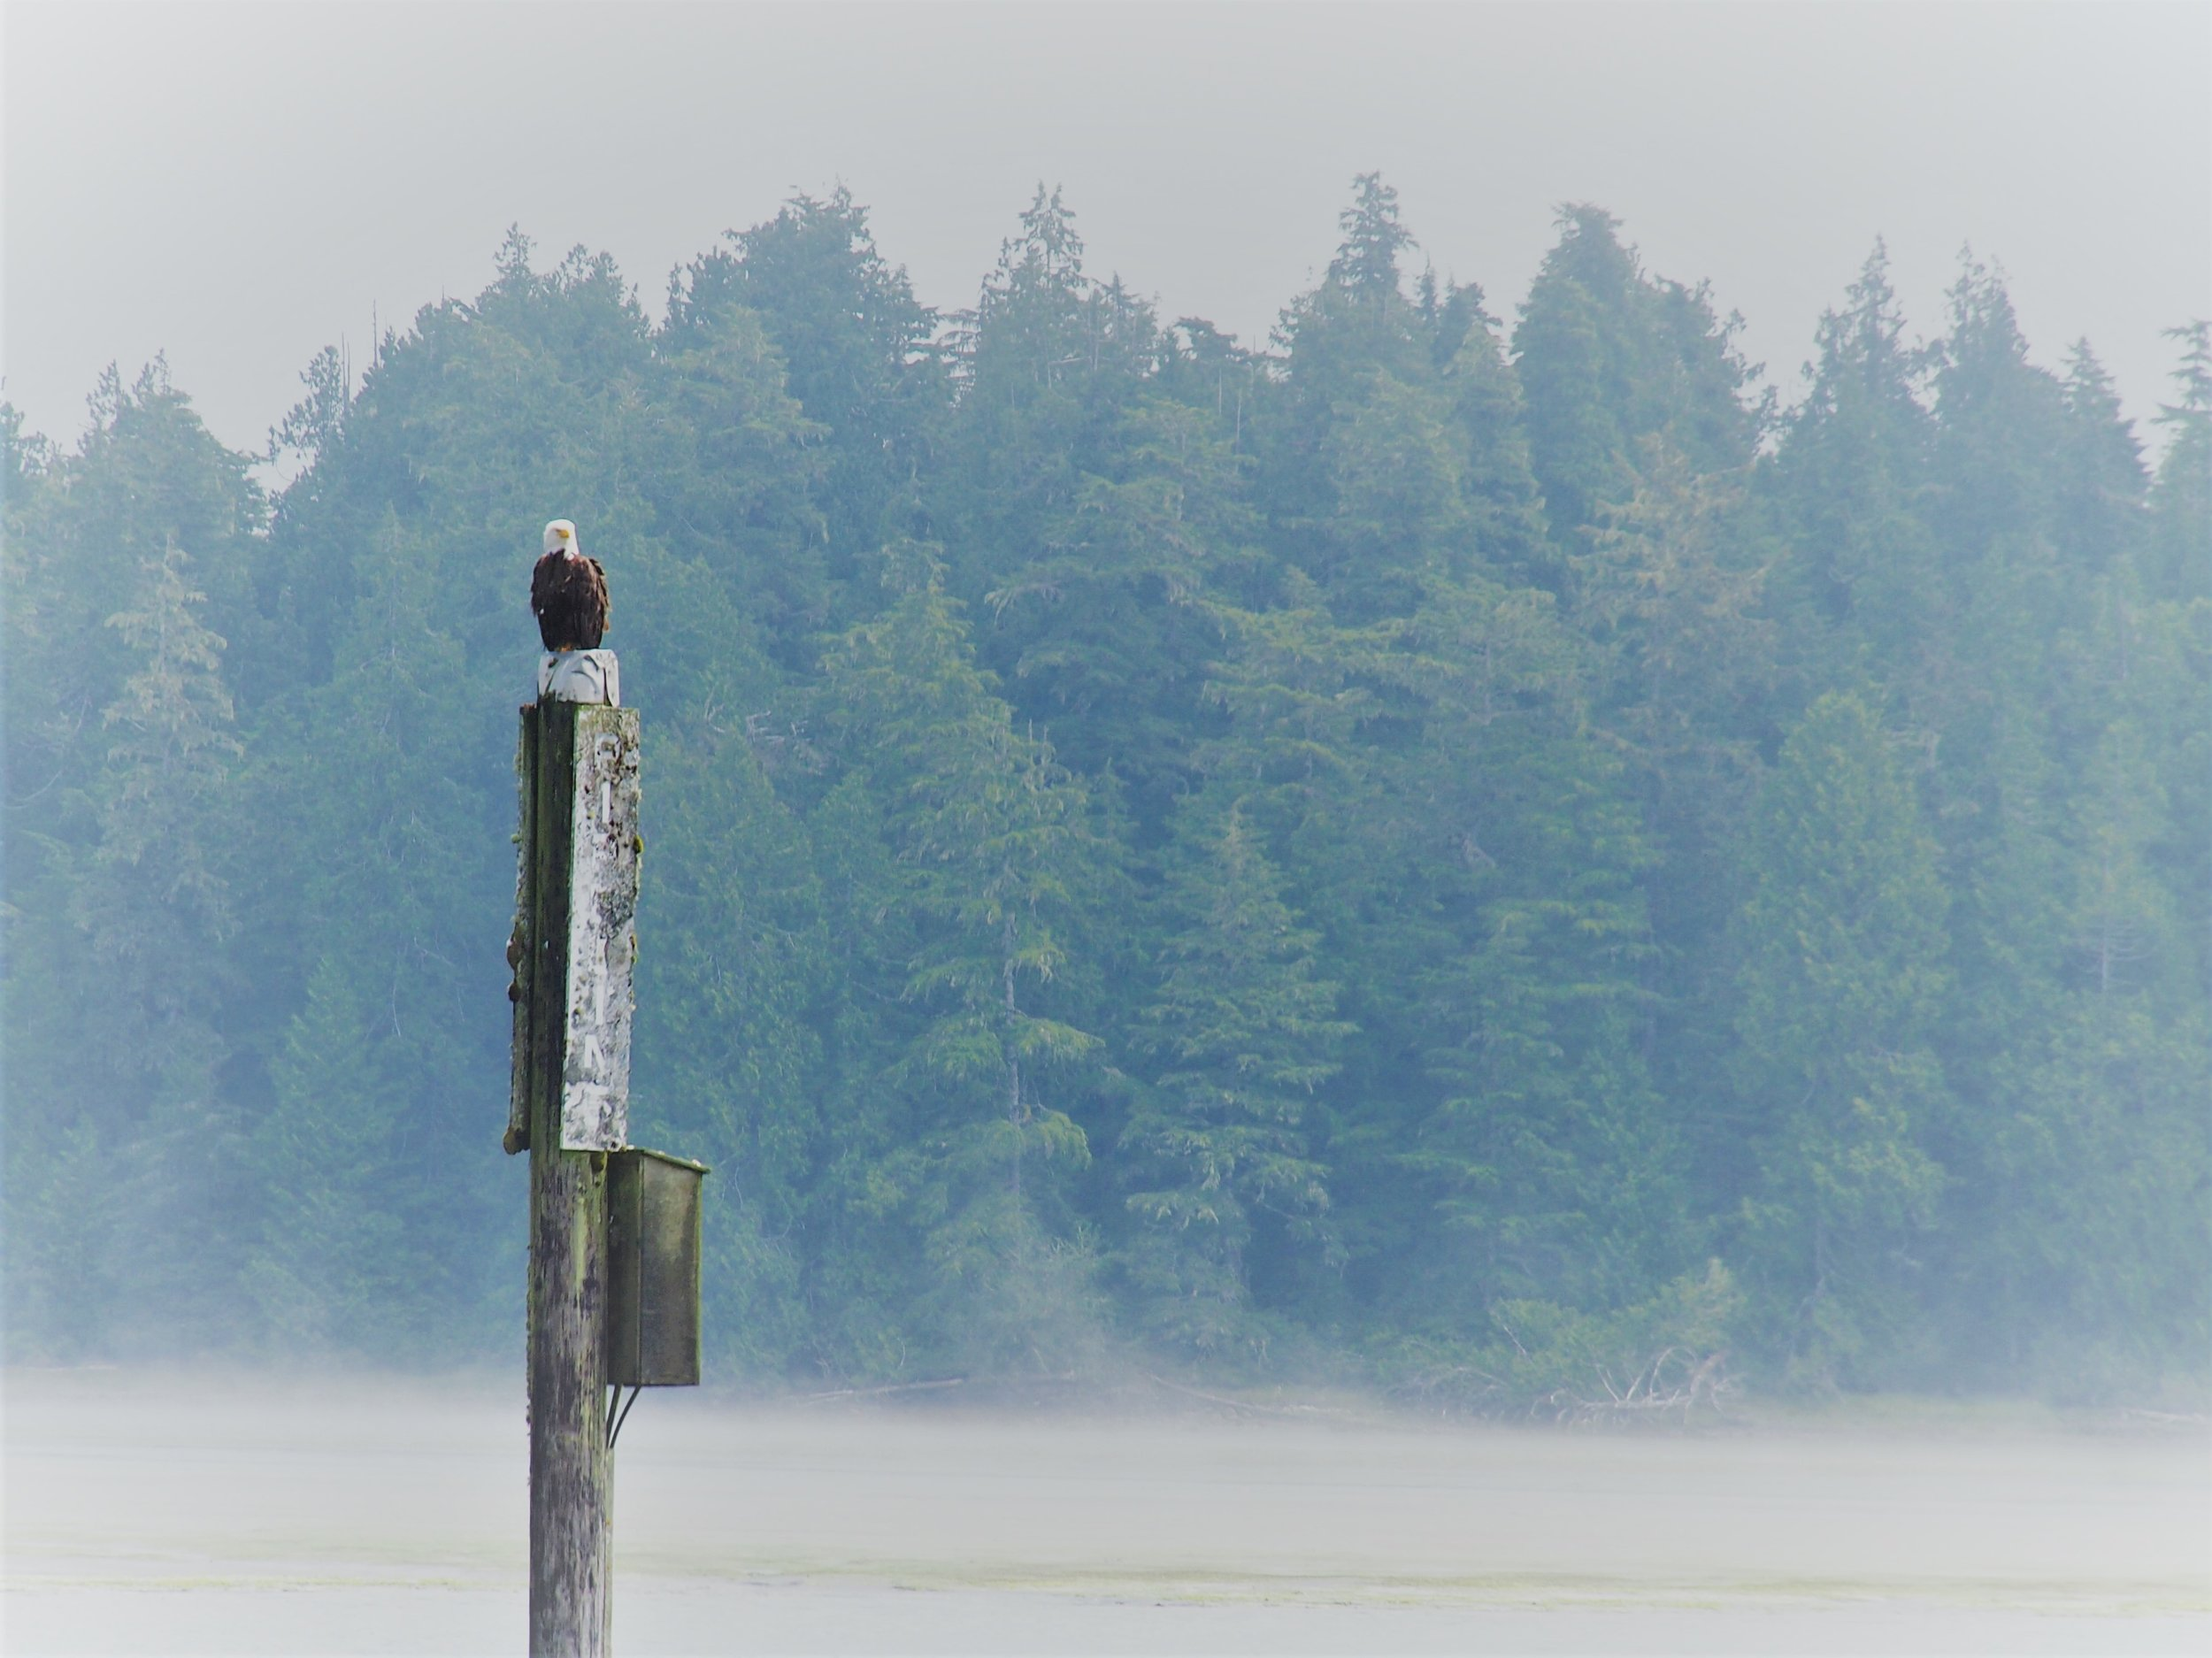 Bald eagle greets you